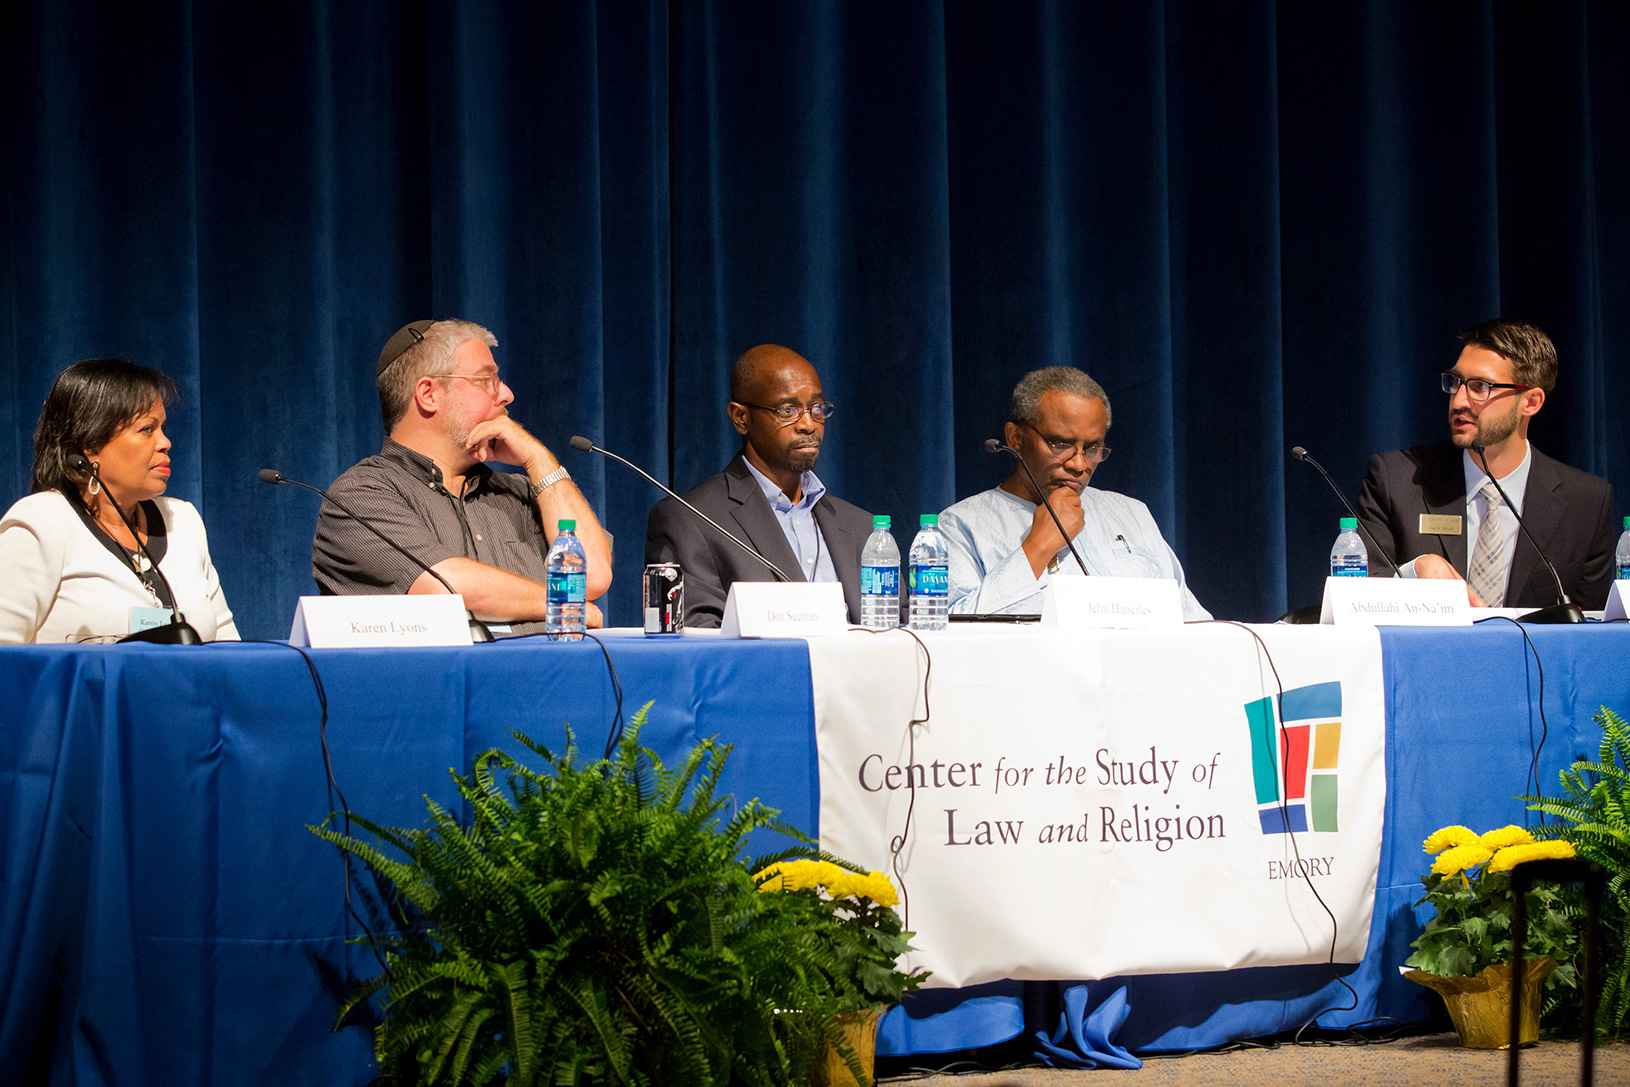 panel on law and religion